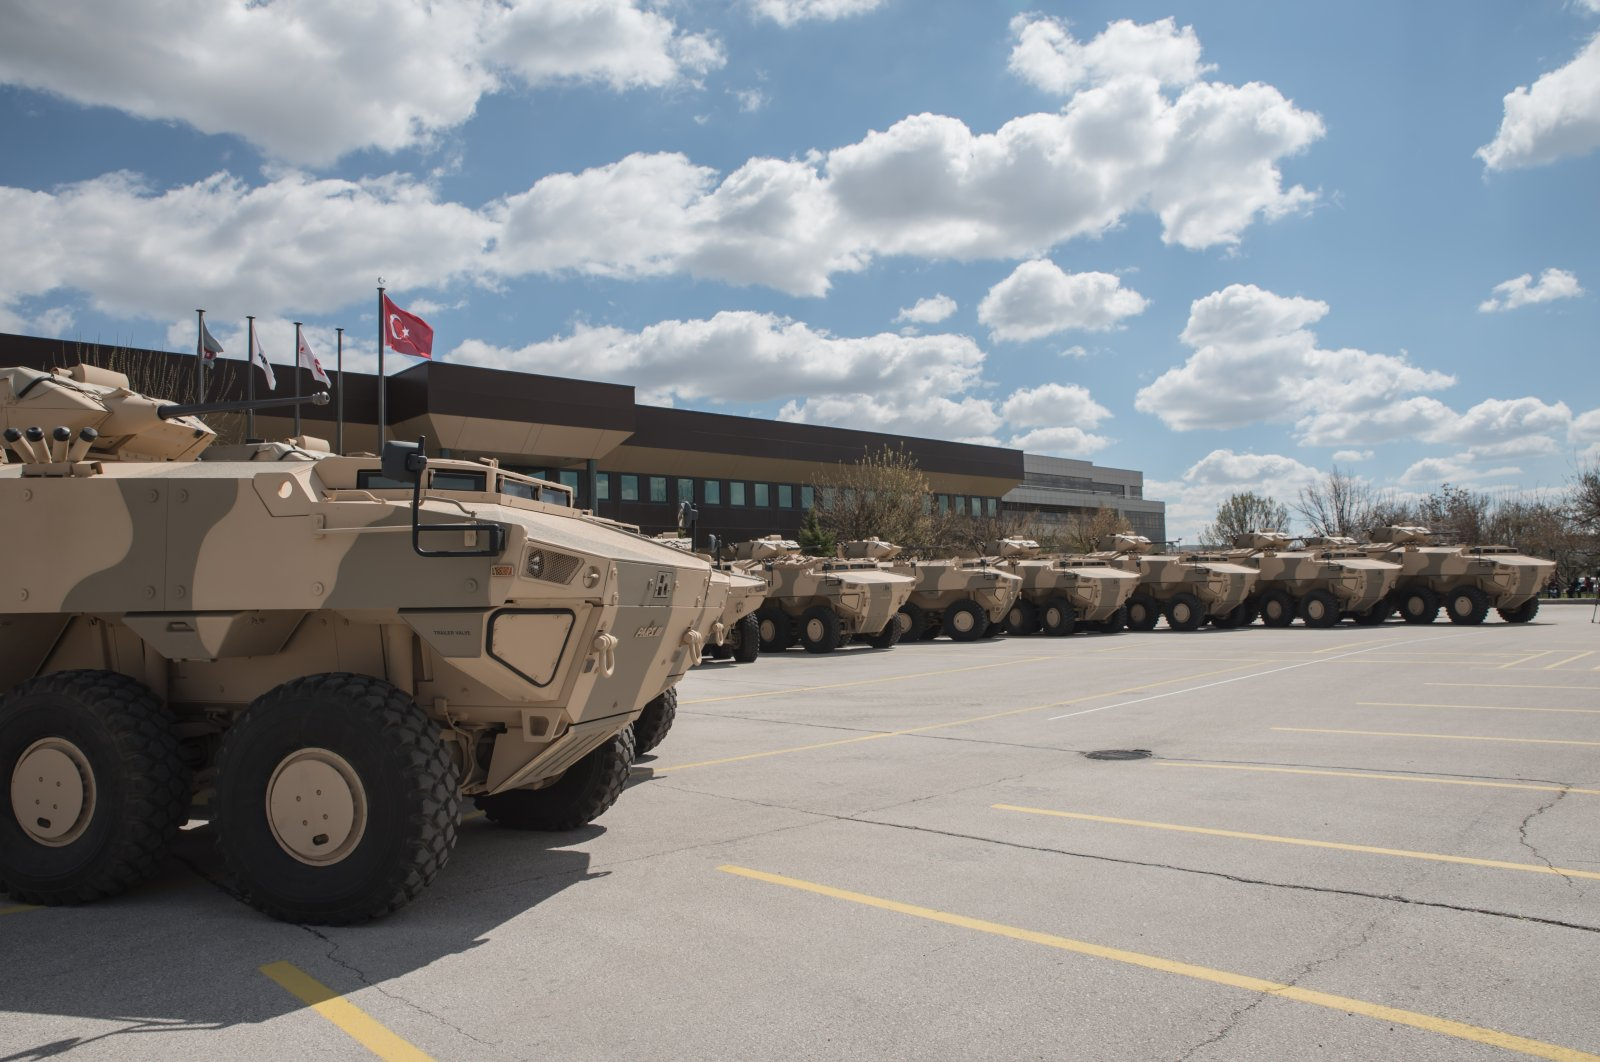 The FNSS has delivered total of 172 armored vehicles to Oman to date. (Photo by FNSS via AA)